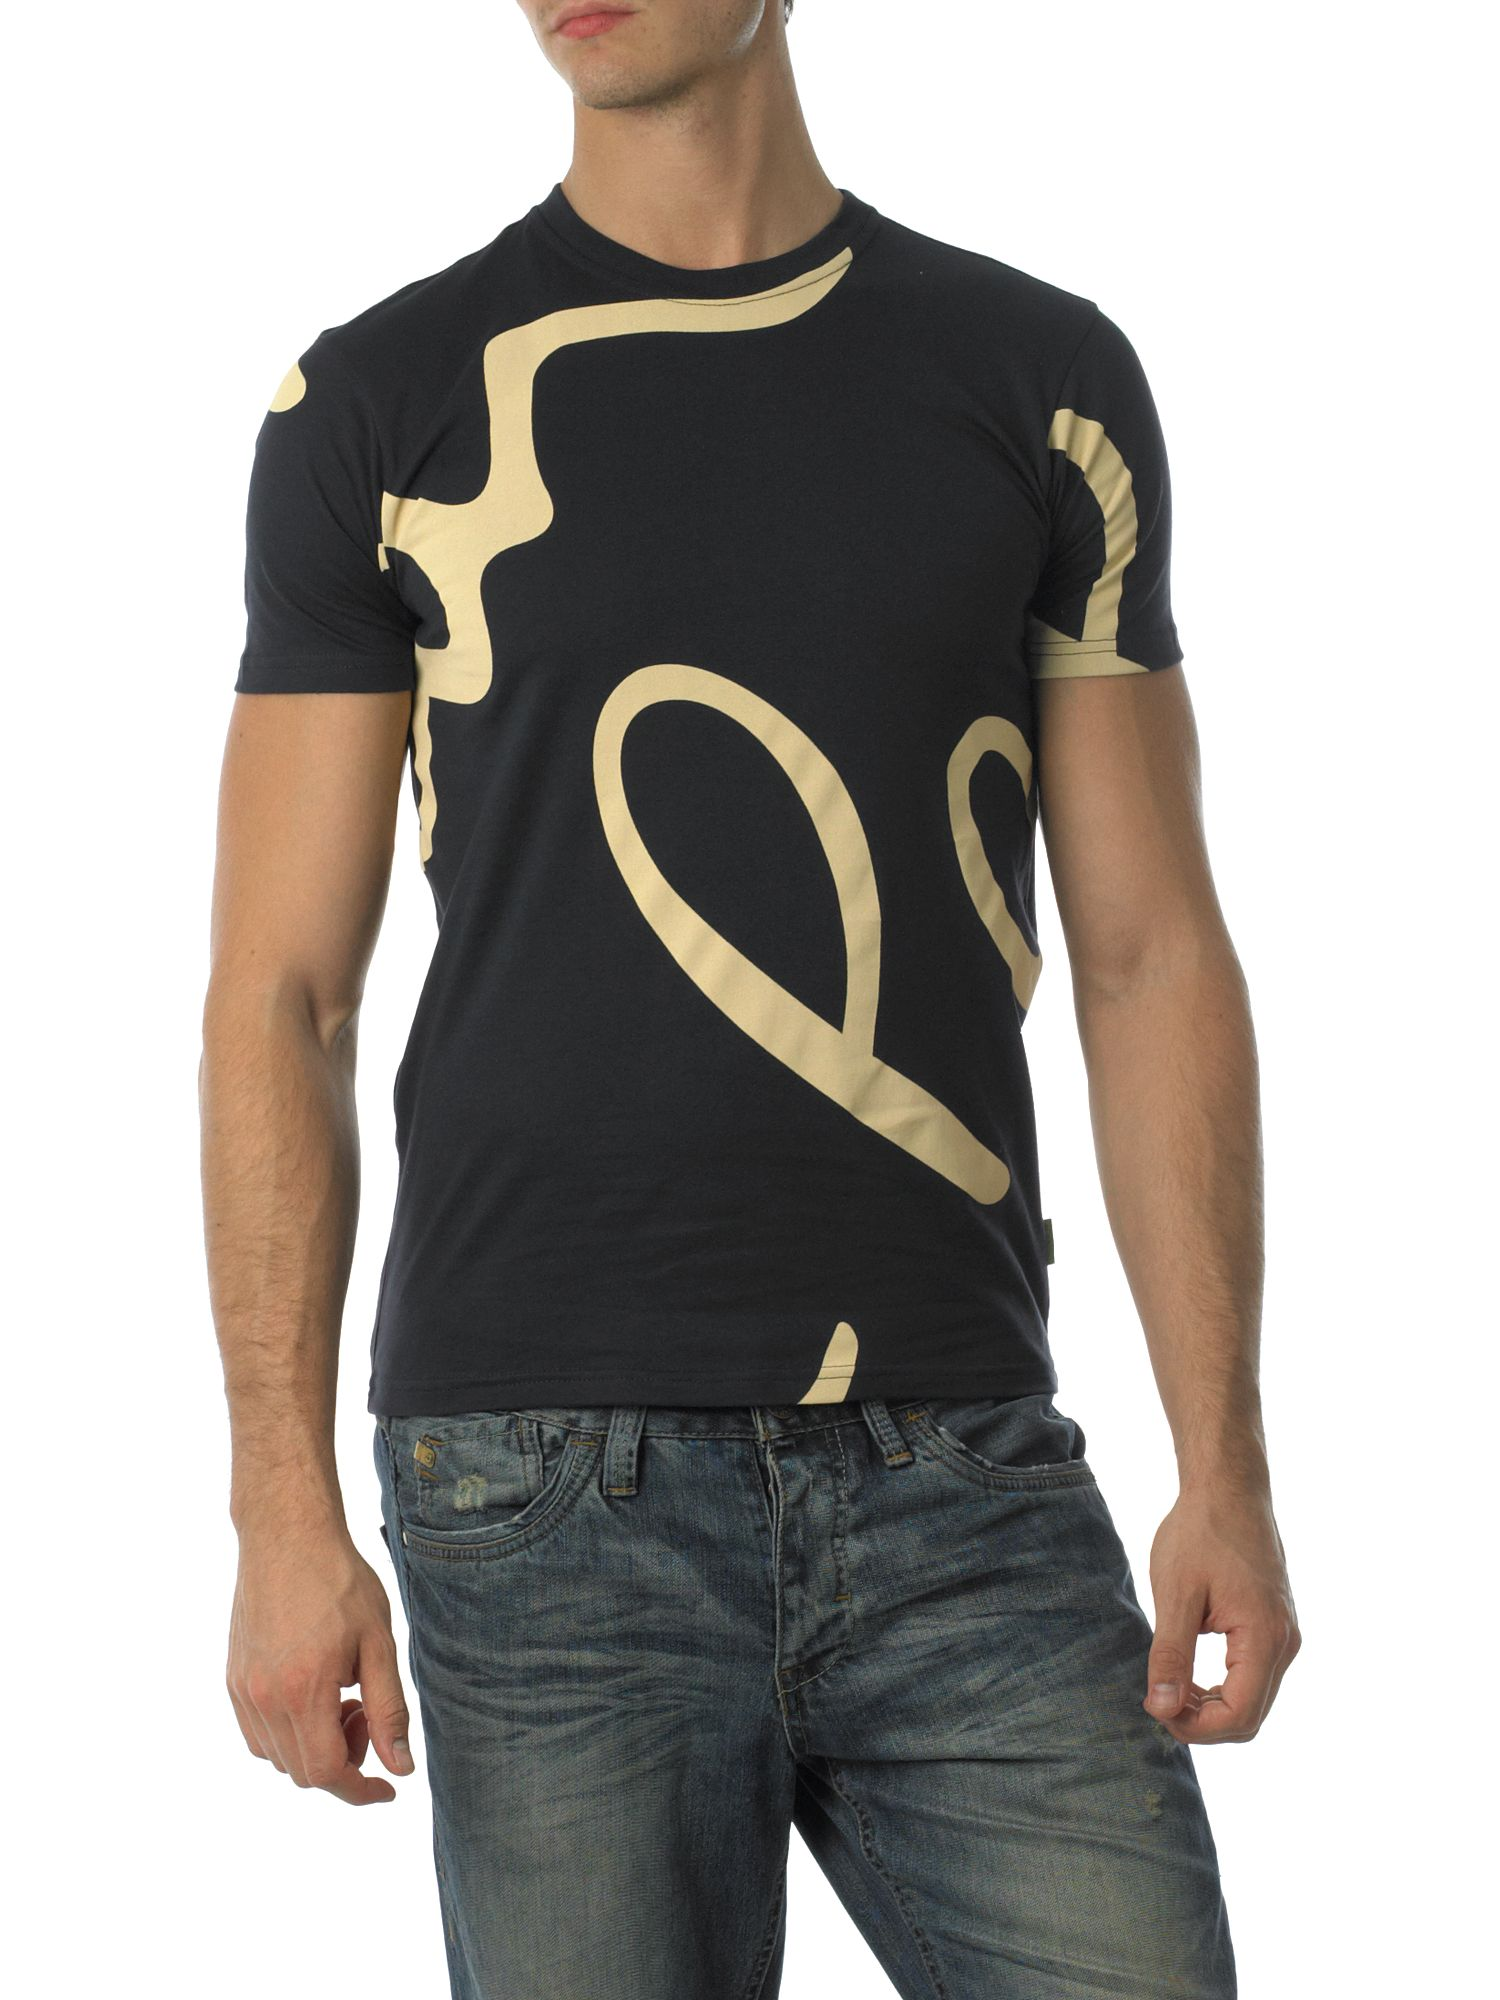 Paul Smith Jeans Signature swirl t-shirt Navy product image